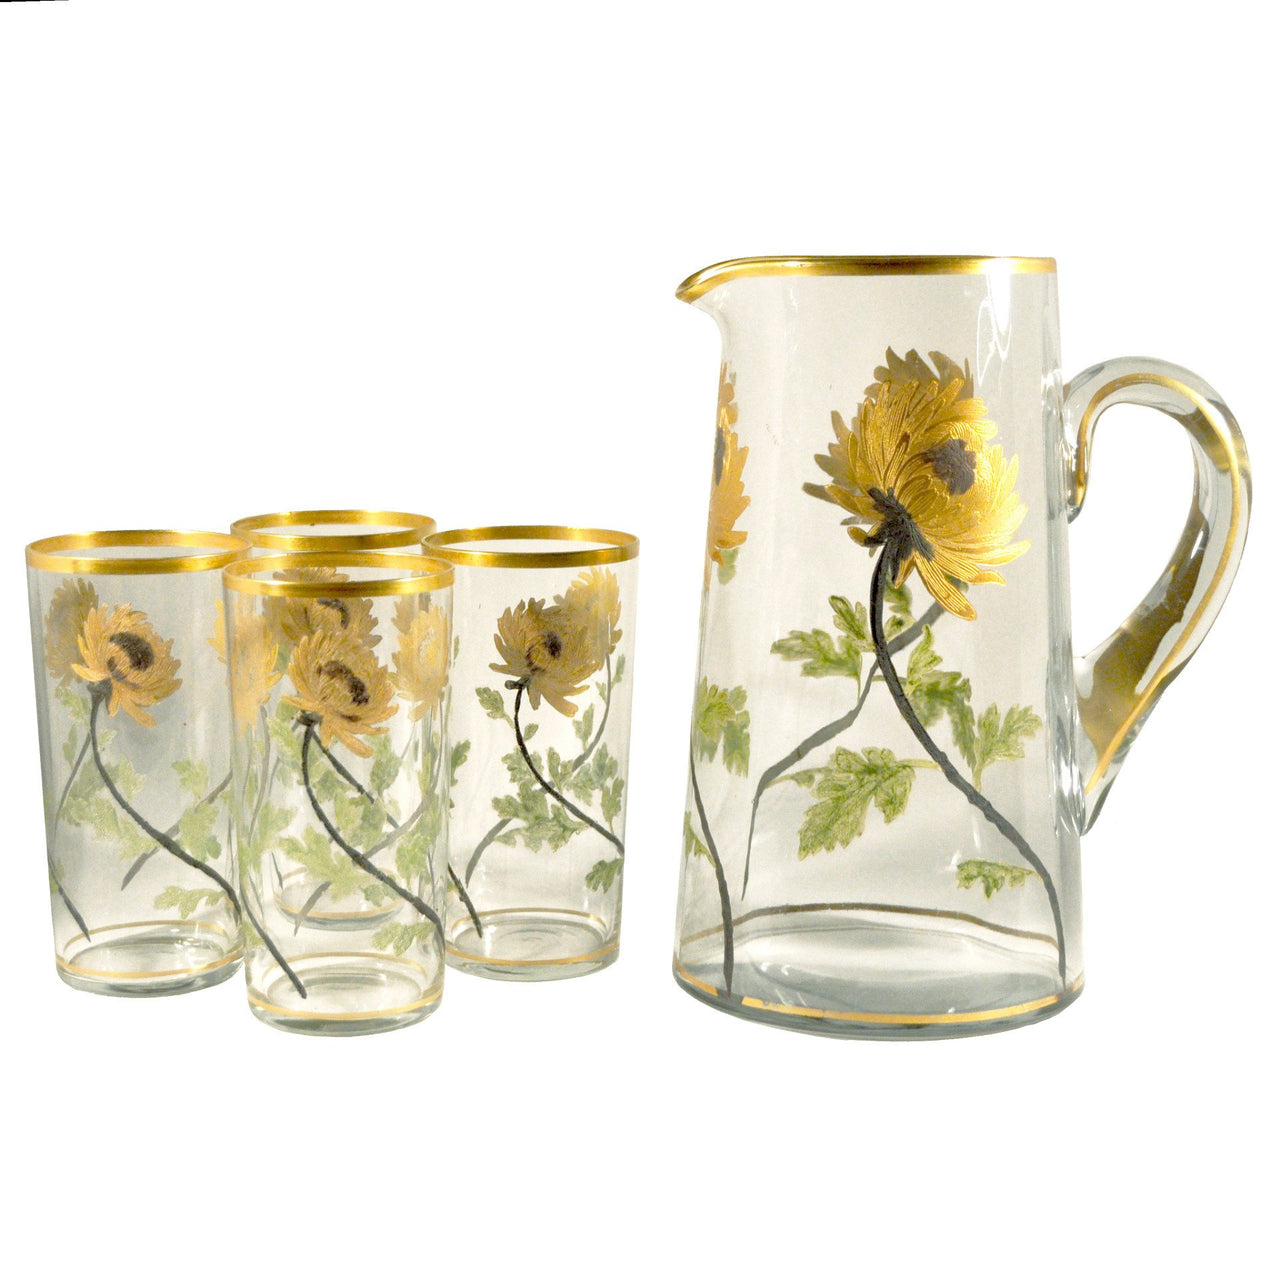 Hand Painted Chrysanthemum Pitcher Set, The Hour Shop Vintage